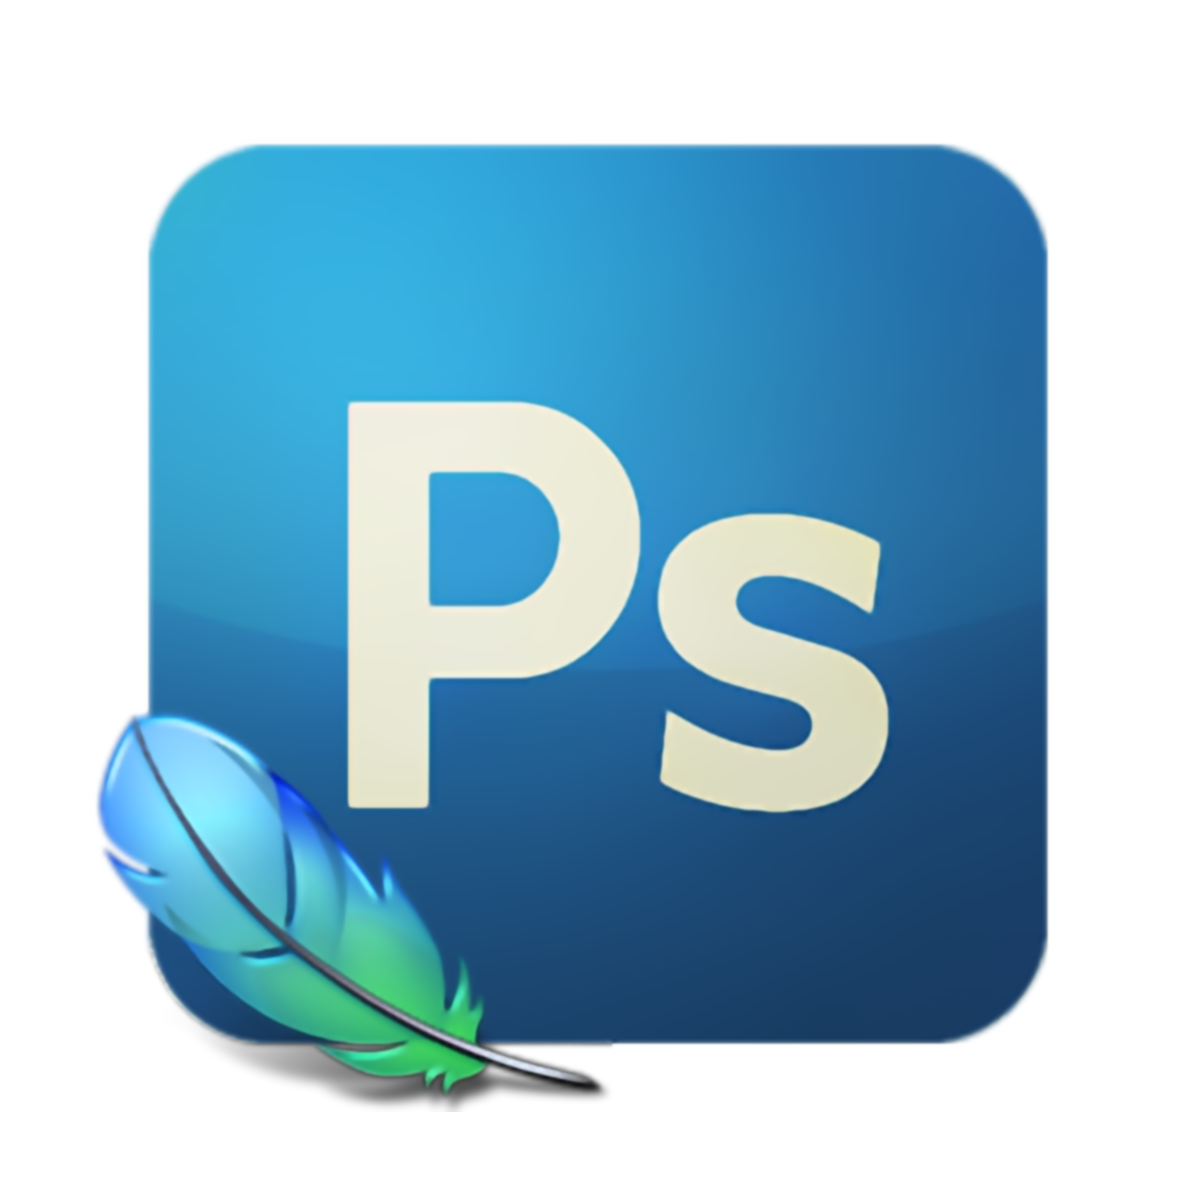 How to create a png logo in photoshop. Animation tutorial quickly simple